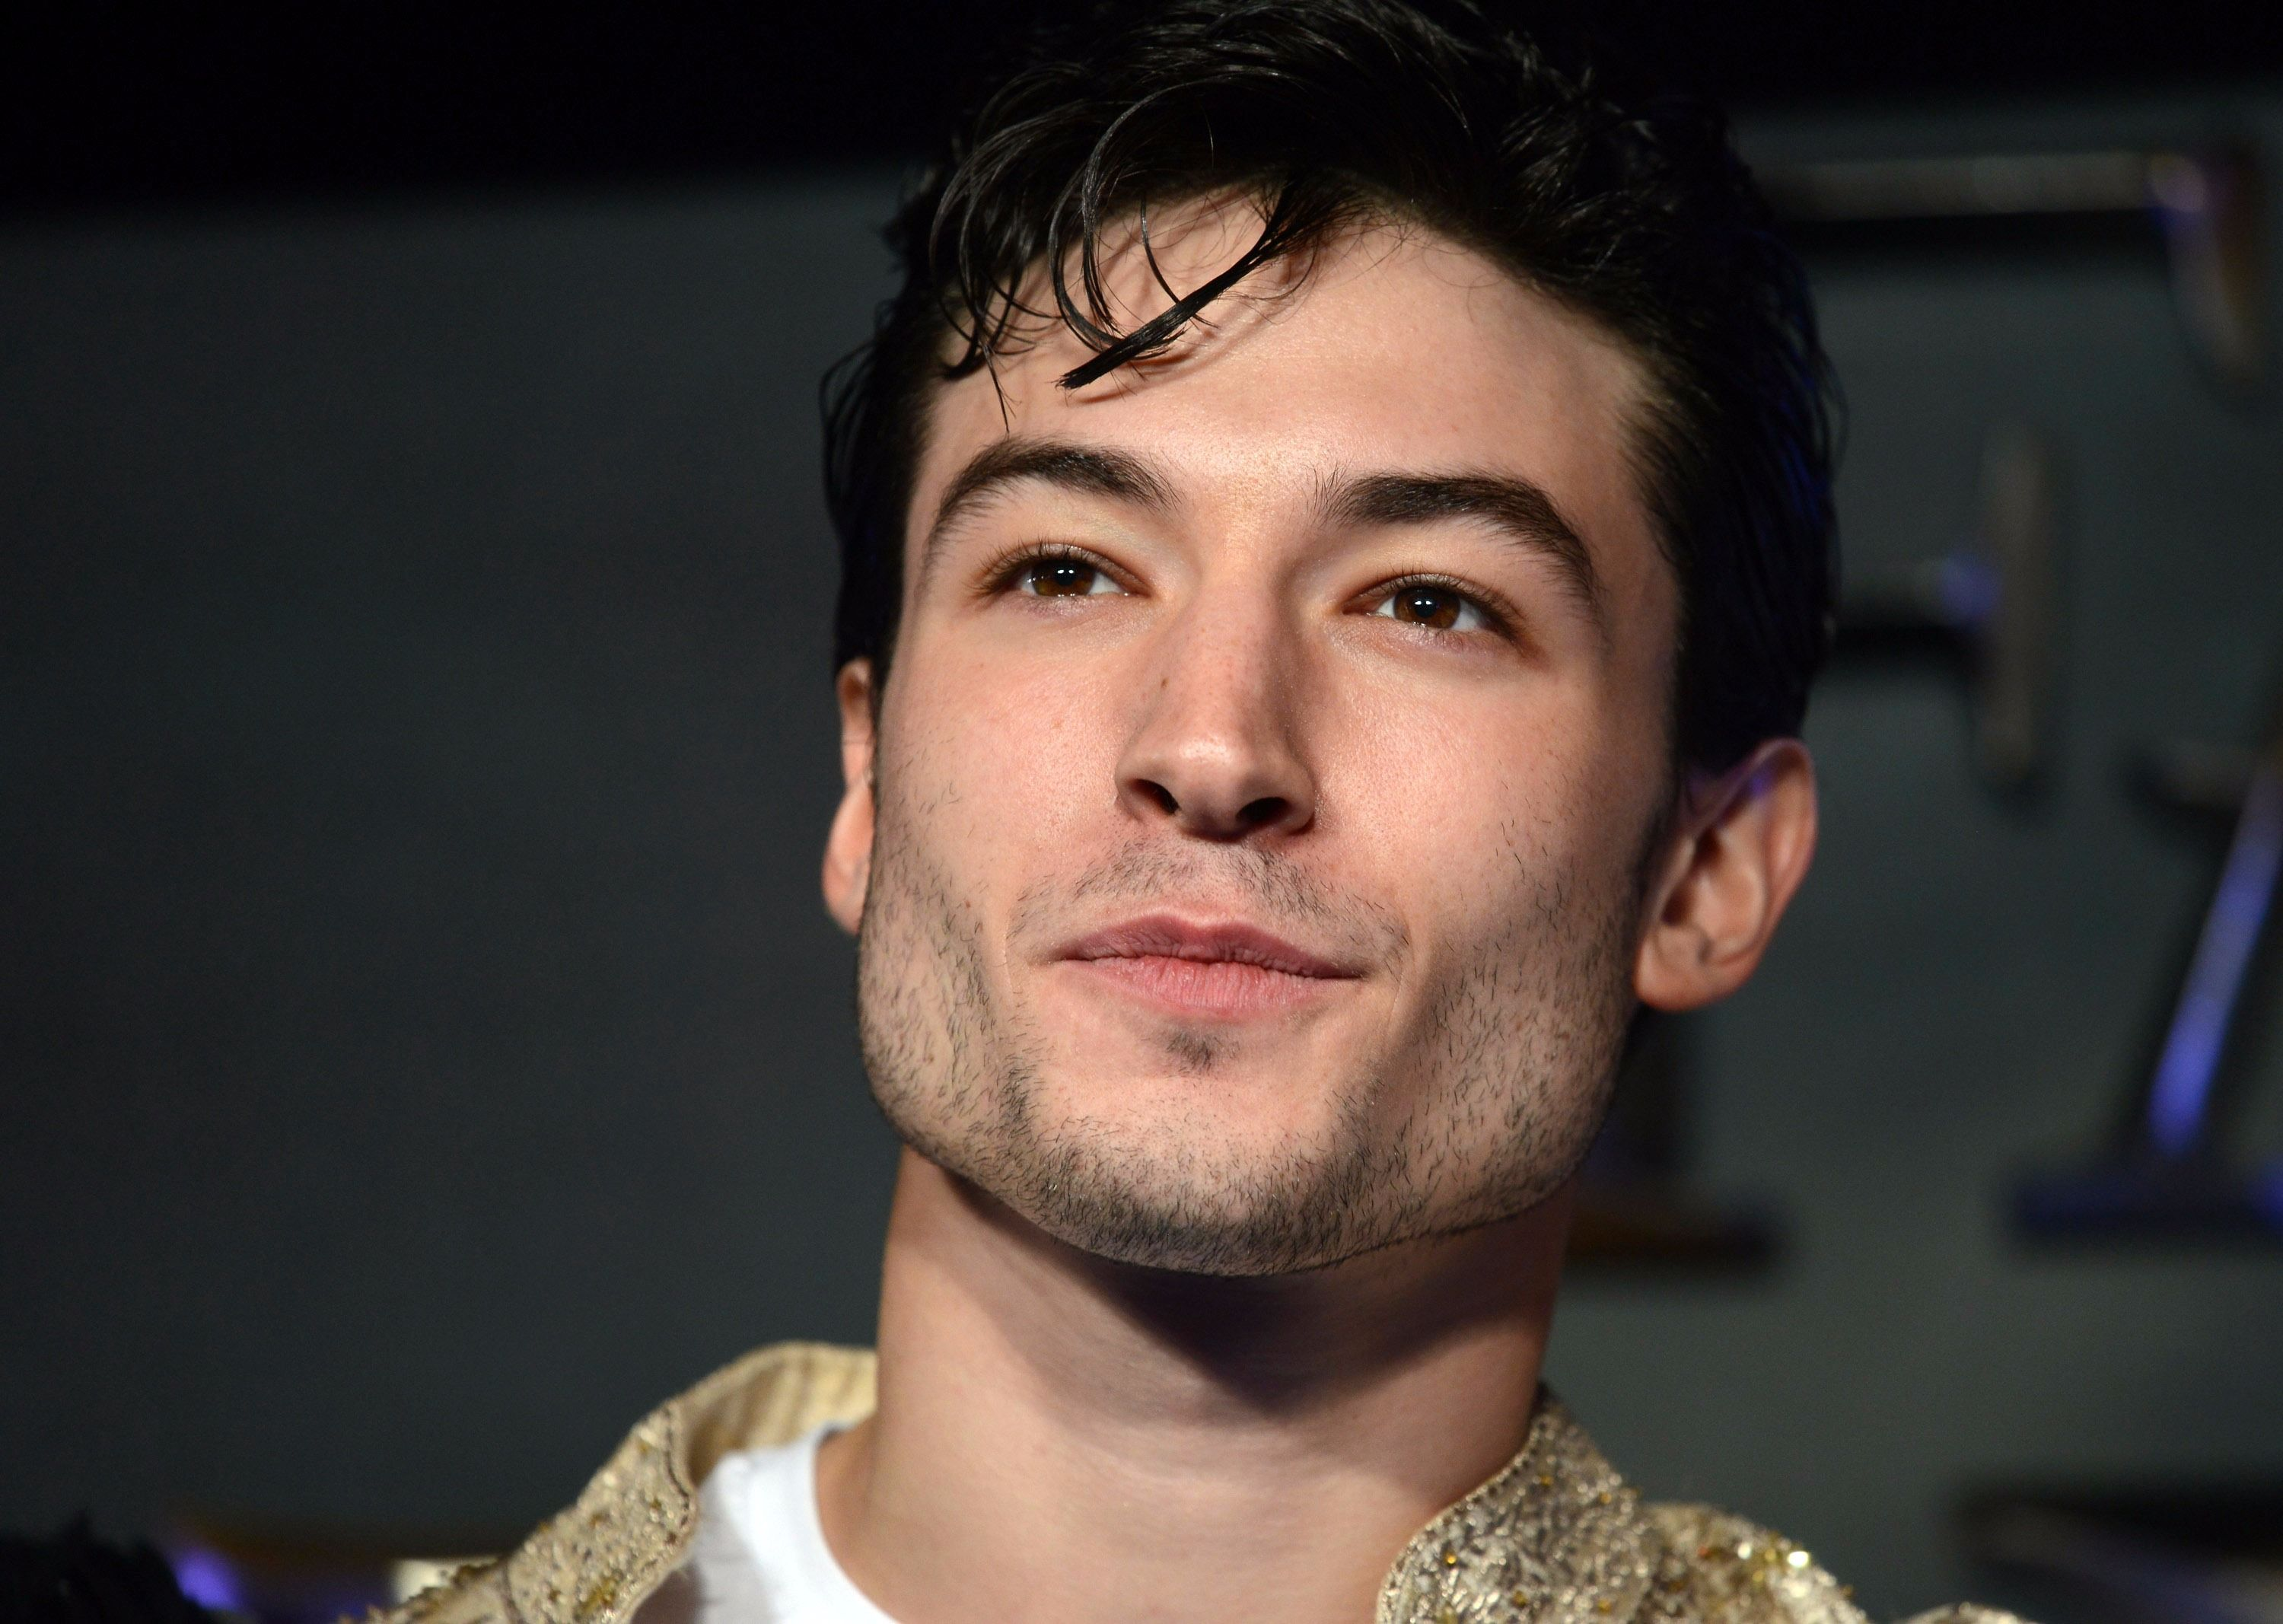 Justice Leagues Ezra Miller Criticized For Coming Out The Forward